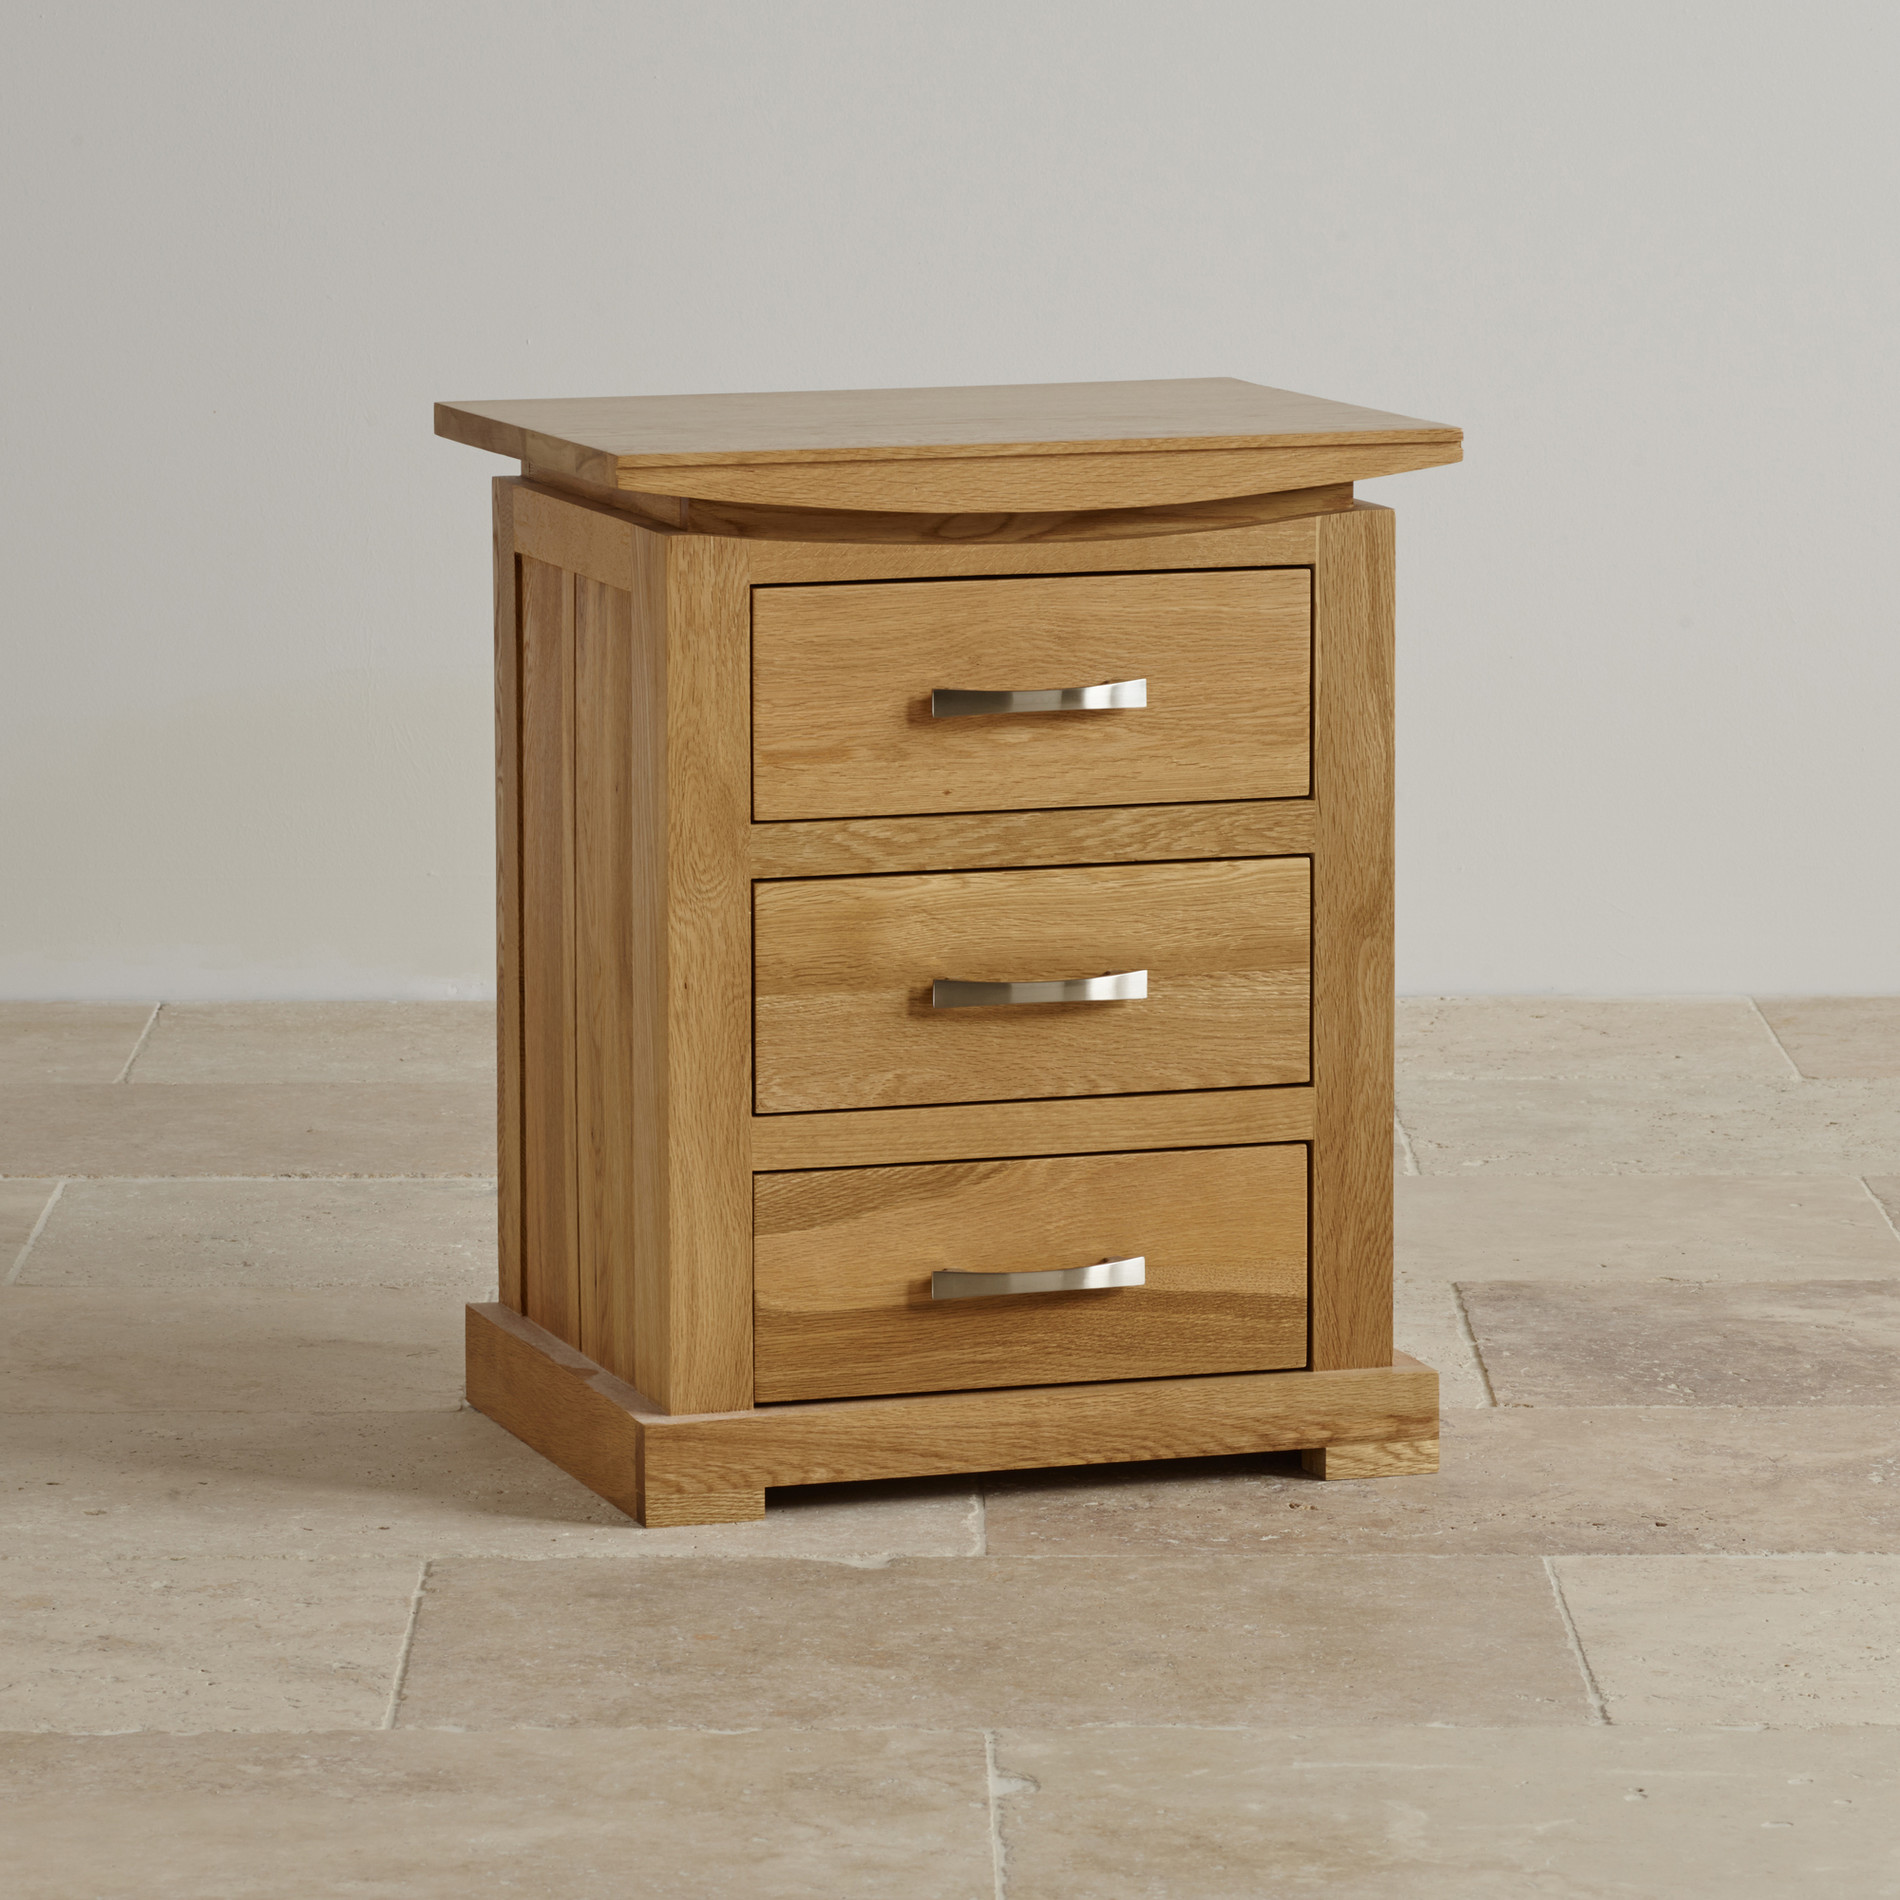 Tokyo 3 drawer bedside table in solid oak oak furniture land - Bedside table ...